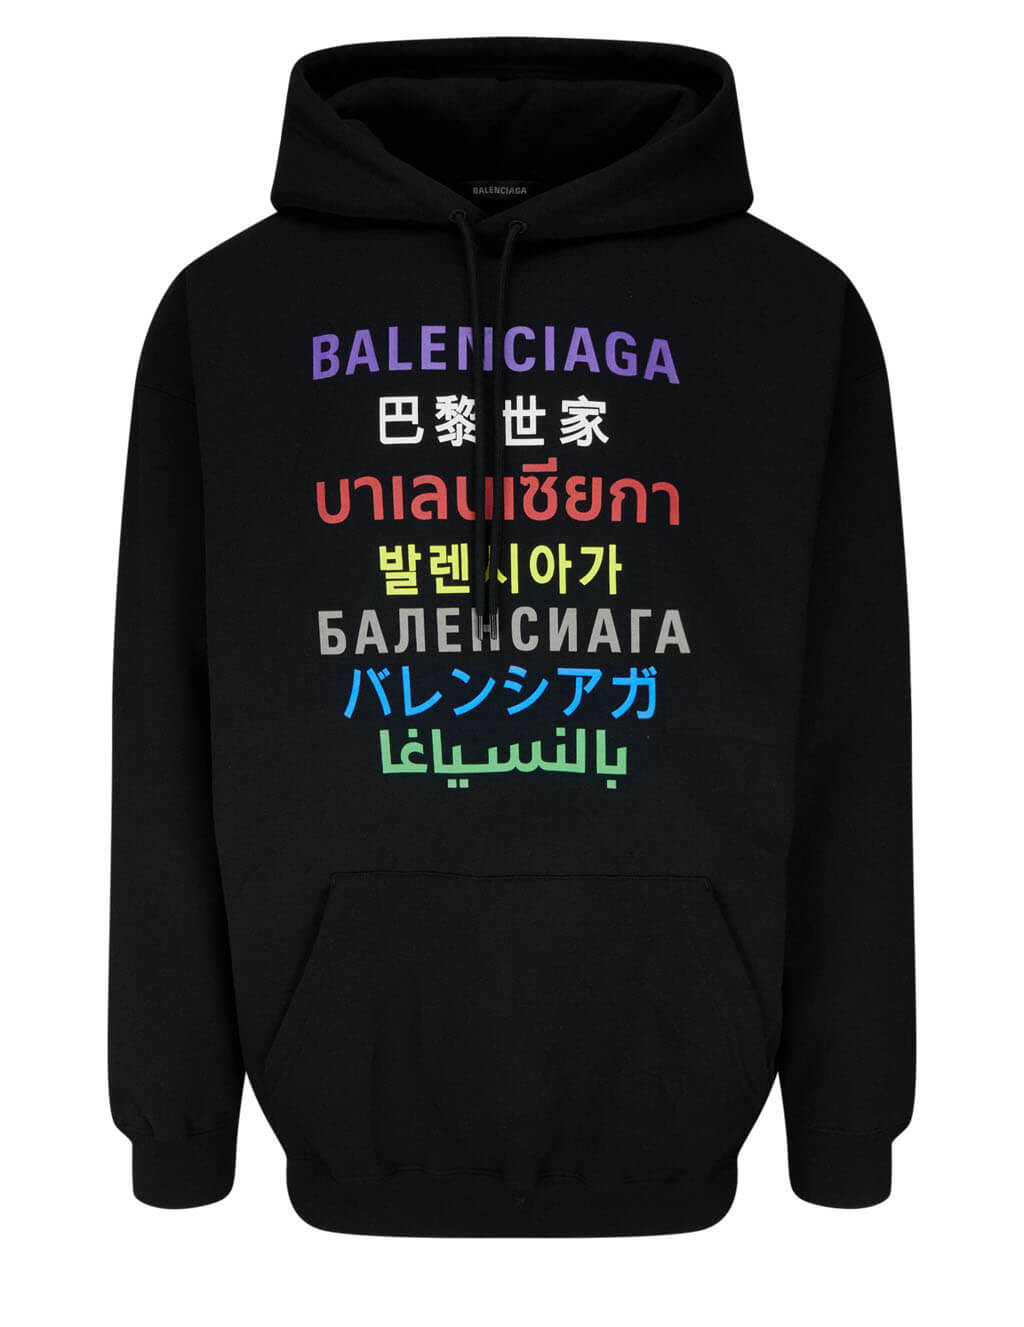 Men's Balenciaga Languages Print Medium Fit Hoodie in Black/Multicolour - 570811TJVI62771